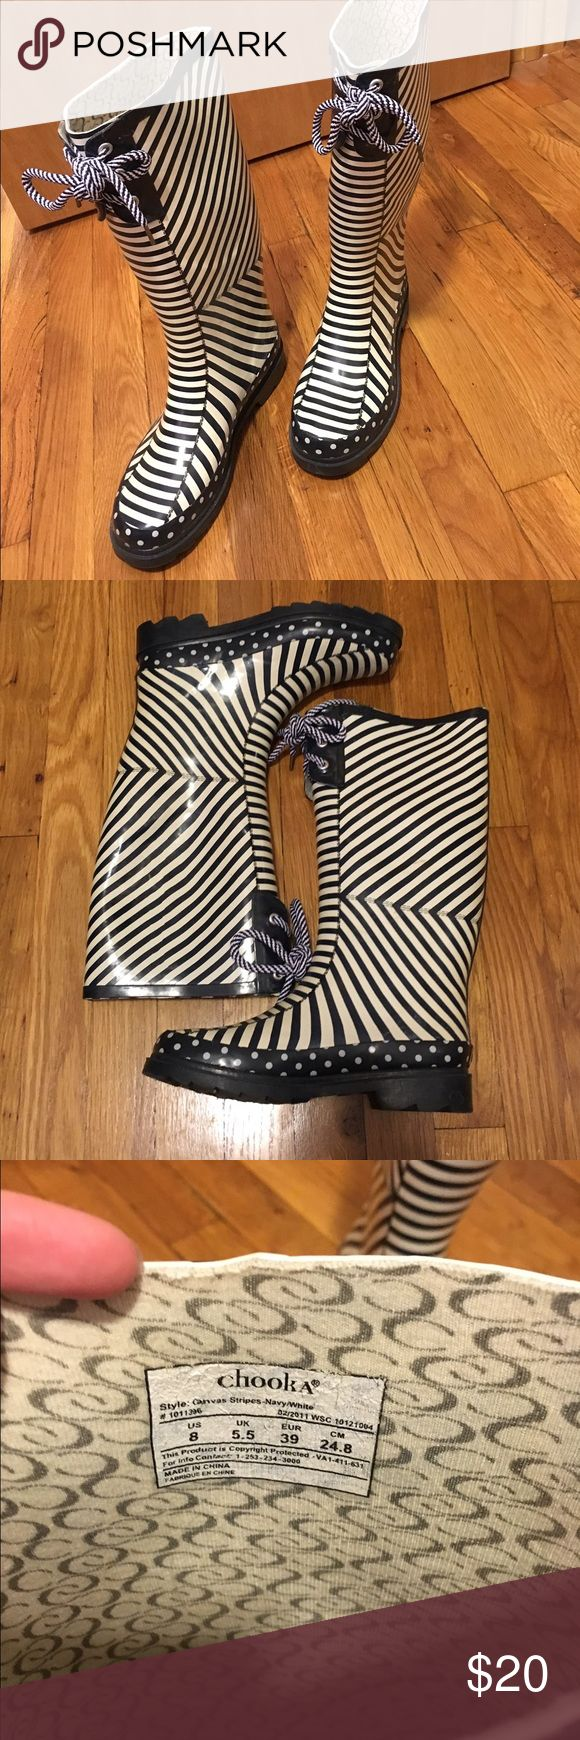 Blue and white striped Rain Boots! Super cute blue and white striped rain boots! Size 8 but run a bit small. Worn a few times but in great condition!! chooka Shoes Winter & Rain Boots